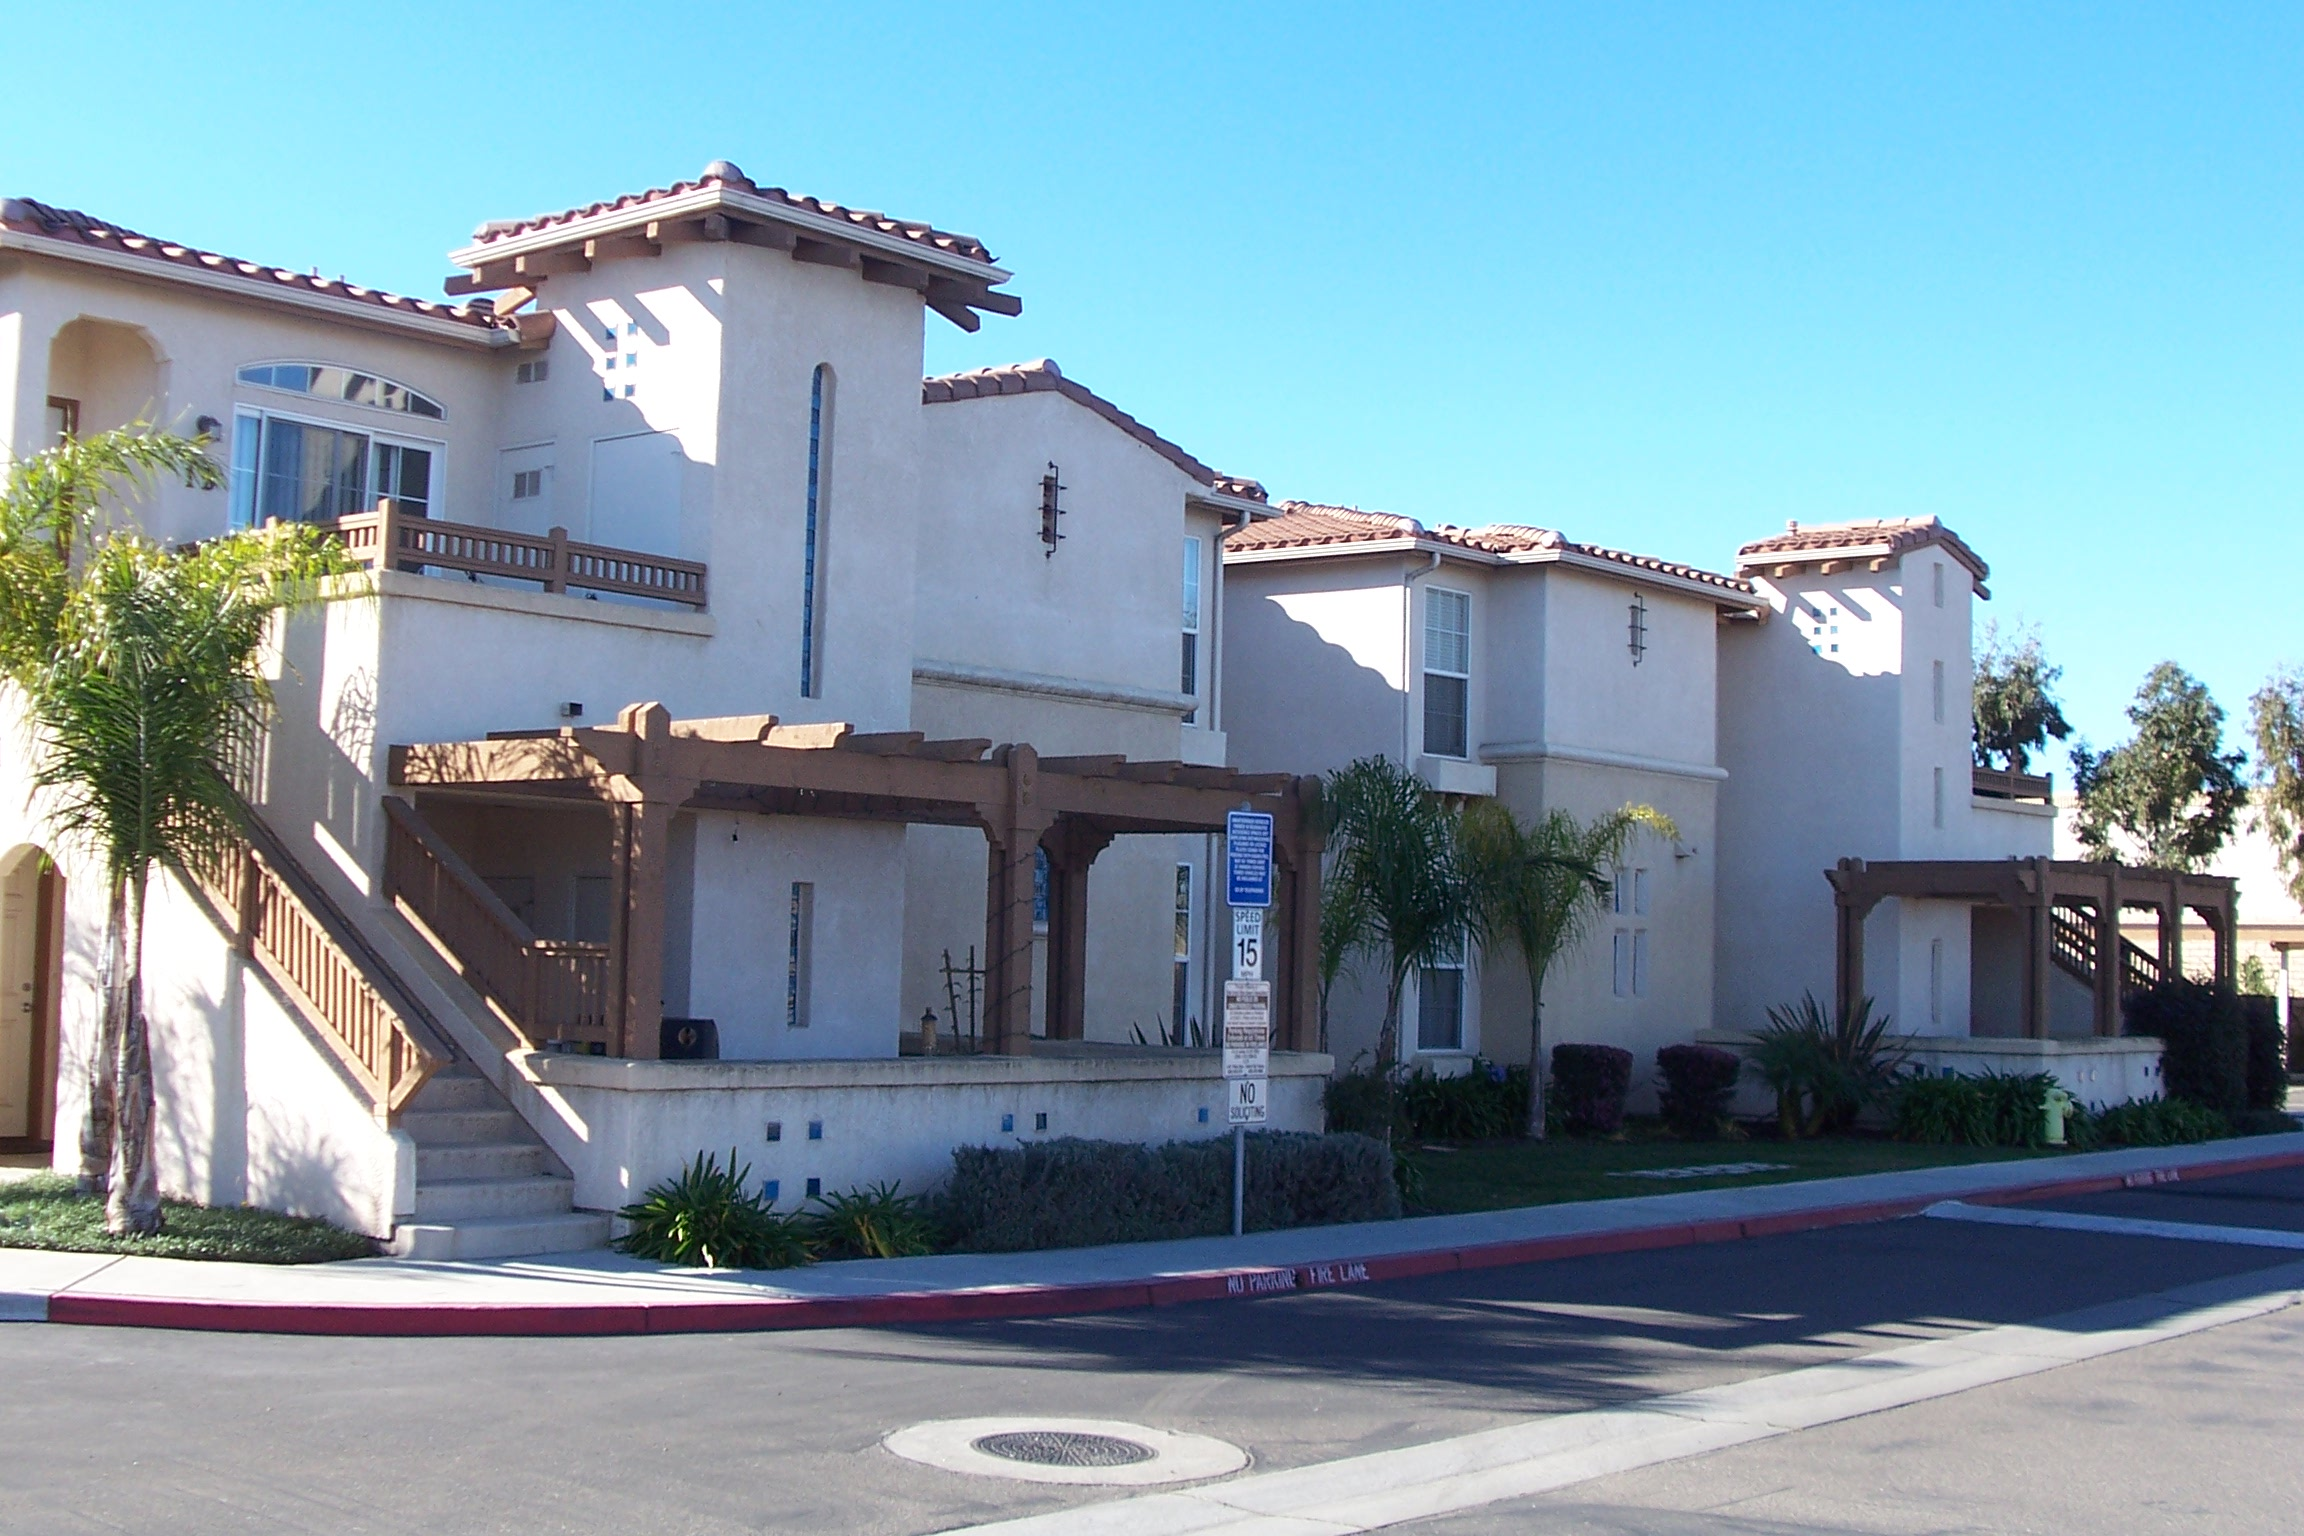 Mission creek village condos vs oak creek villas santa for Villas california